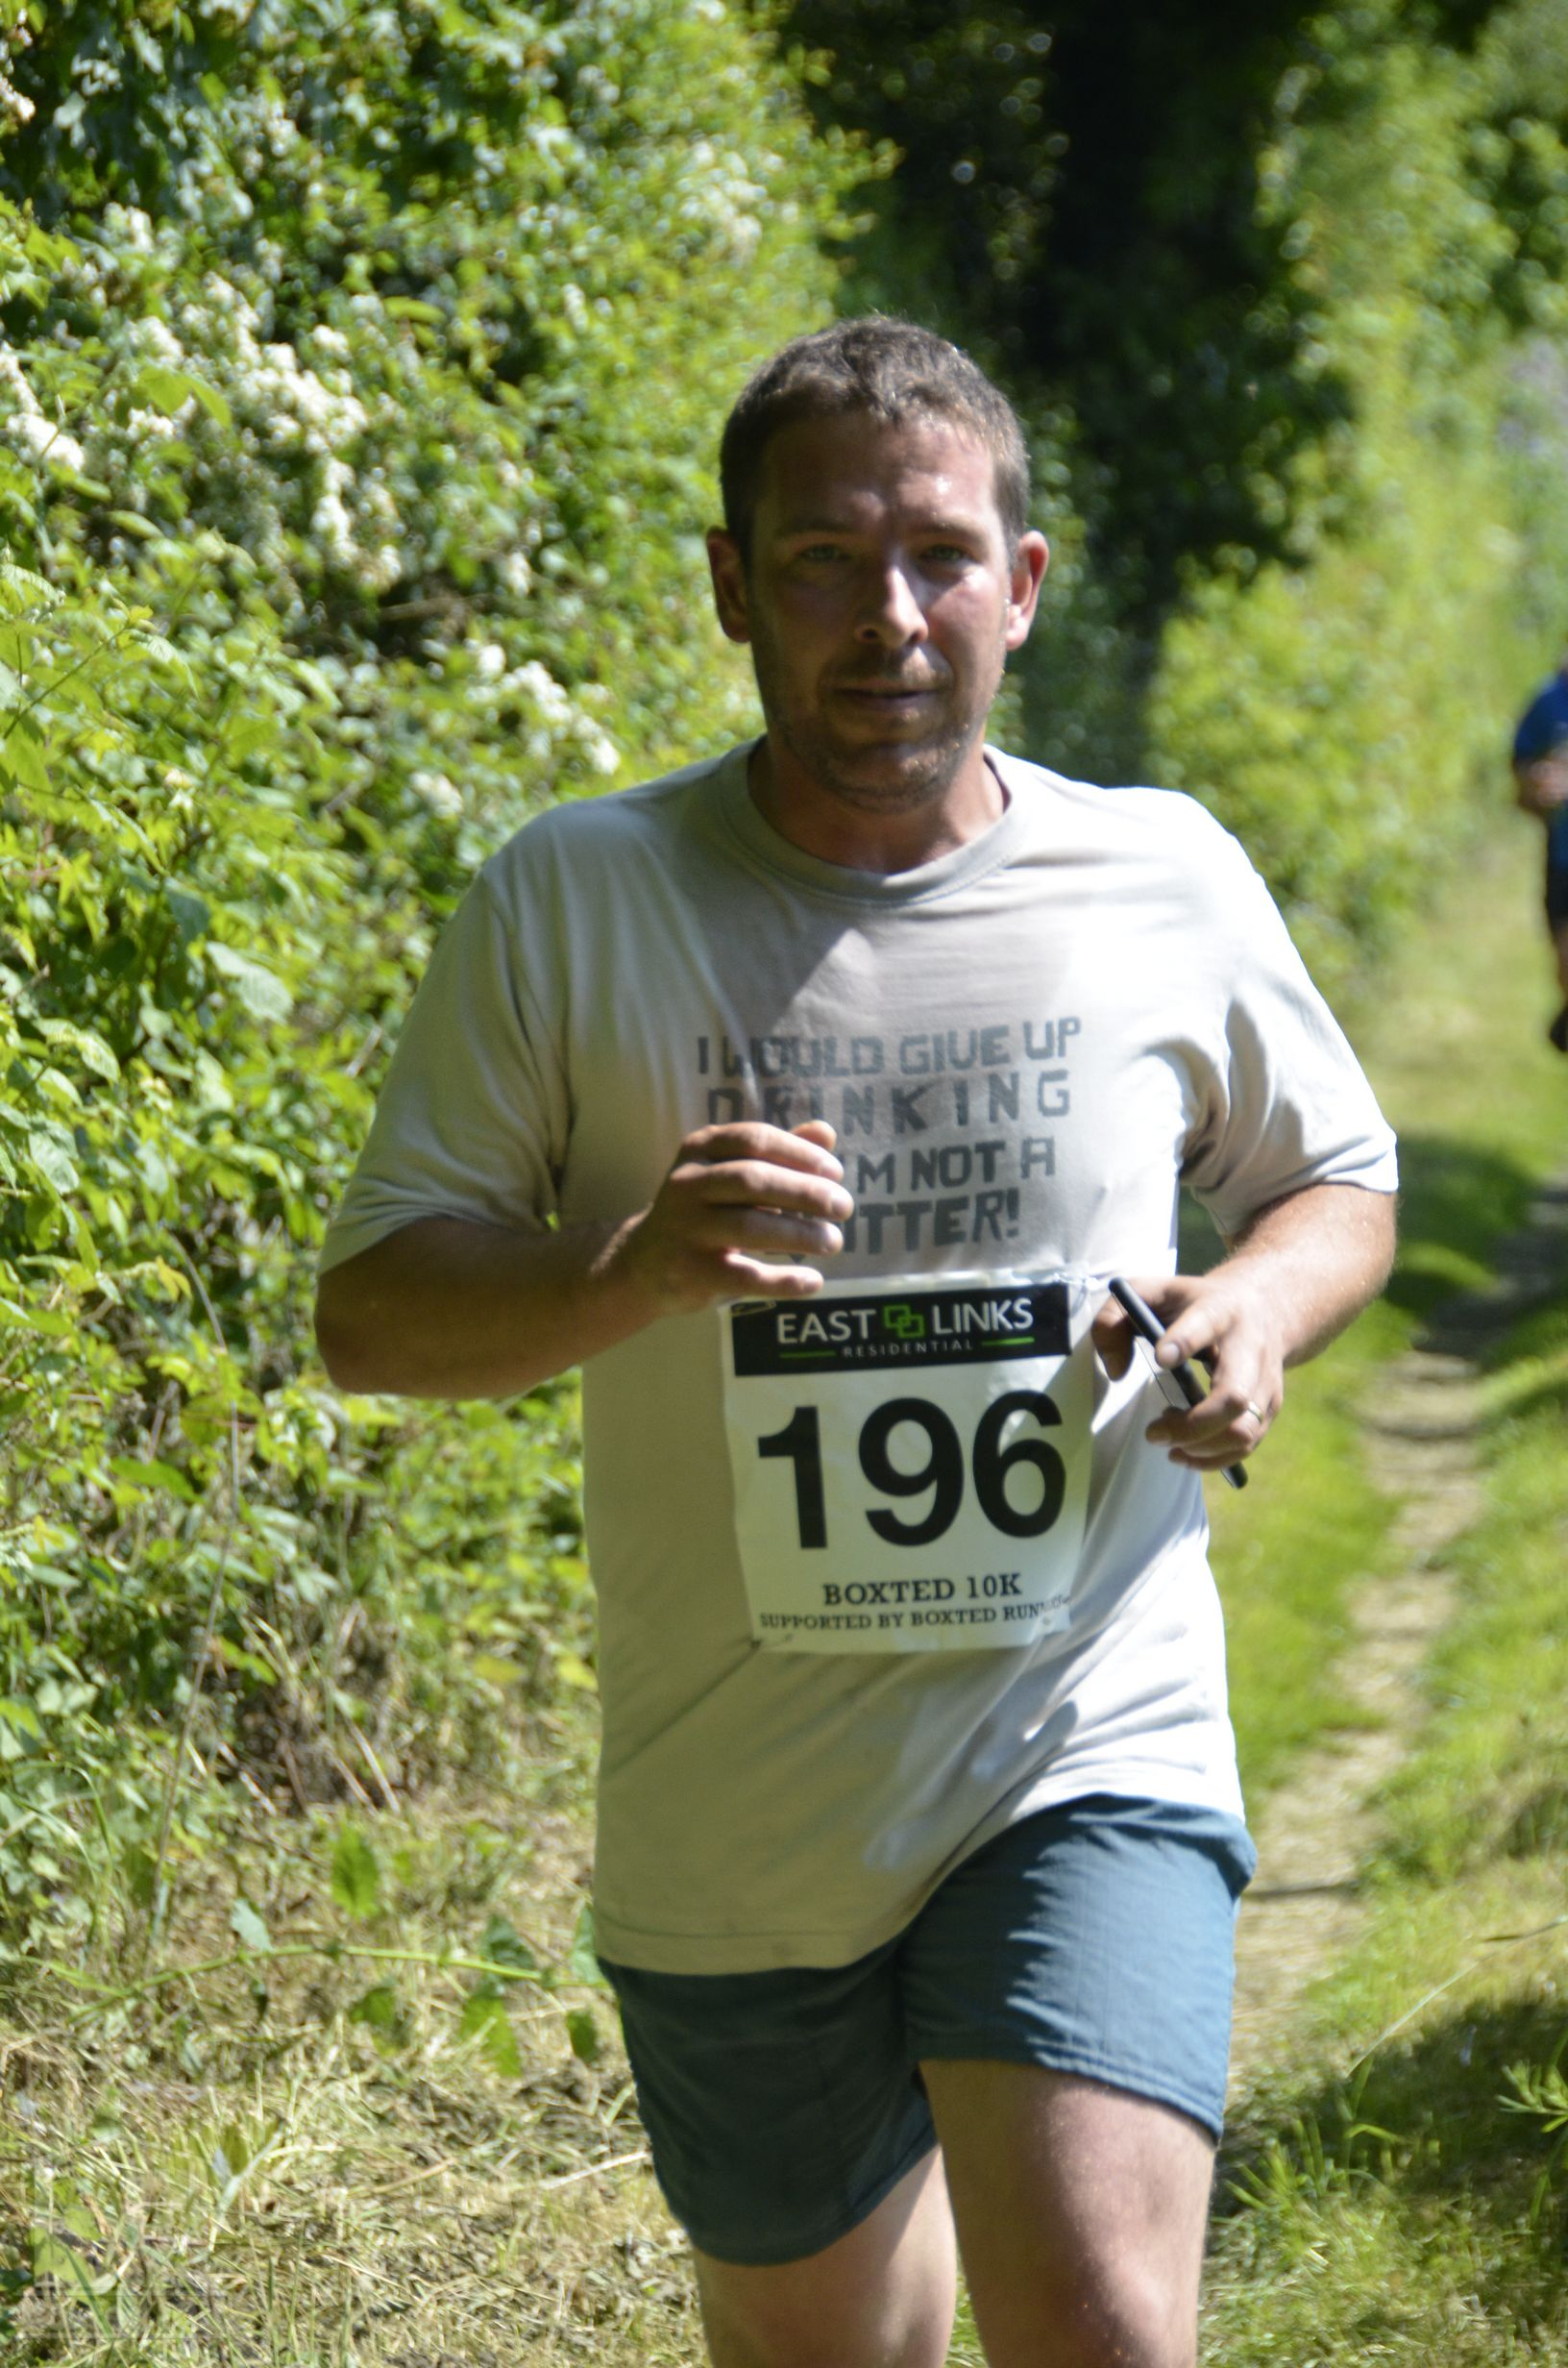 Boxted10k-00245